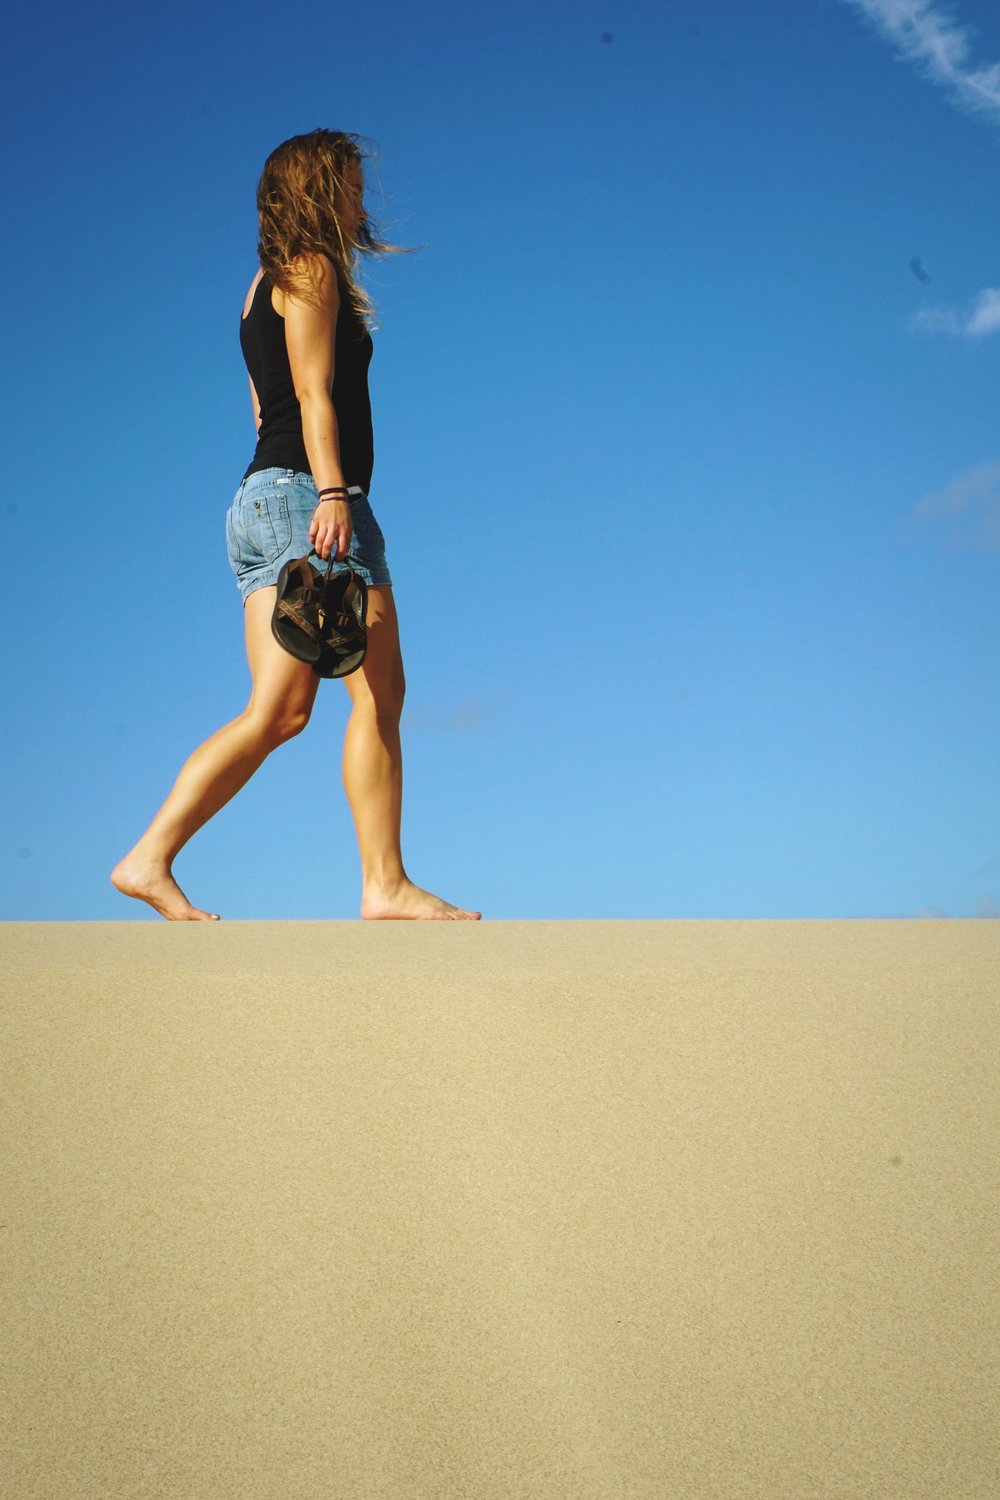 In some windblown areas the sand is very firm.